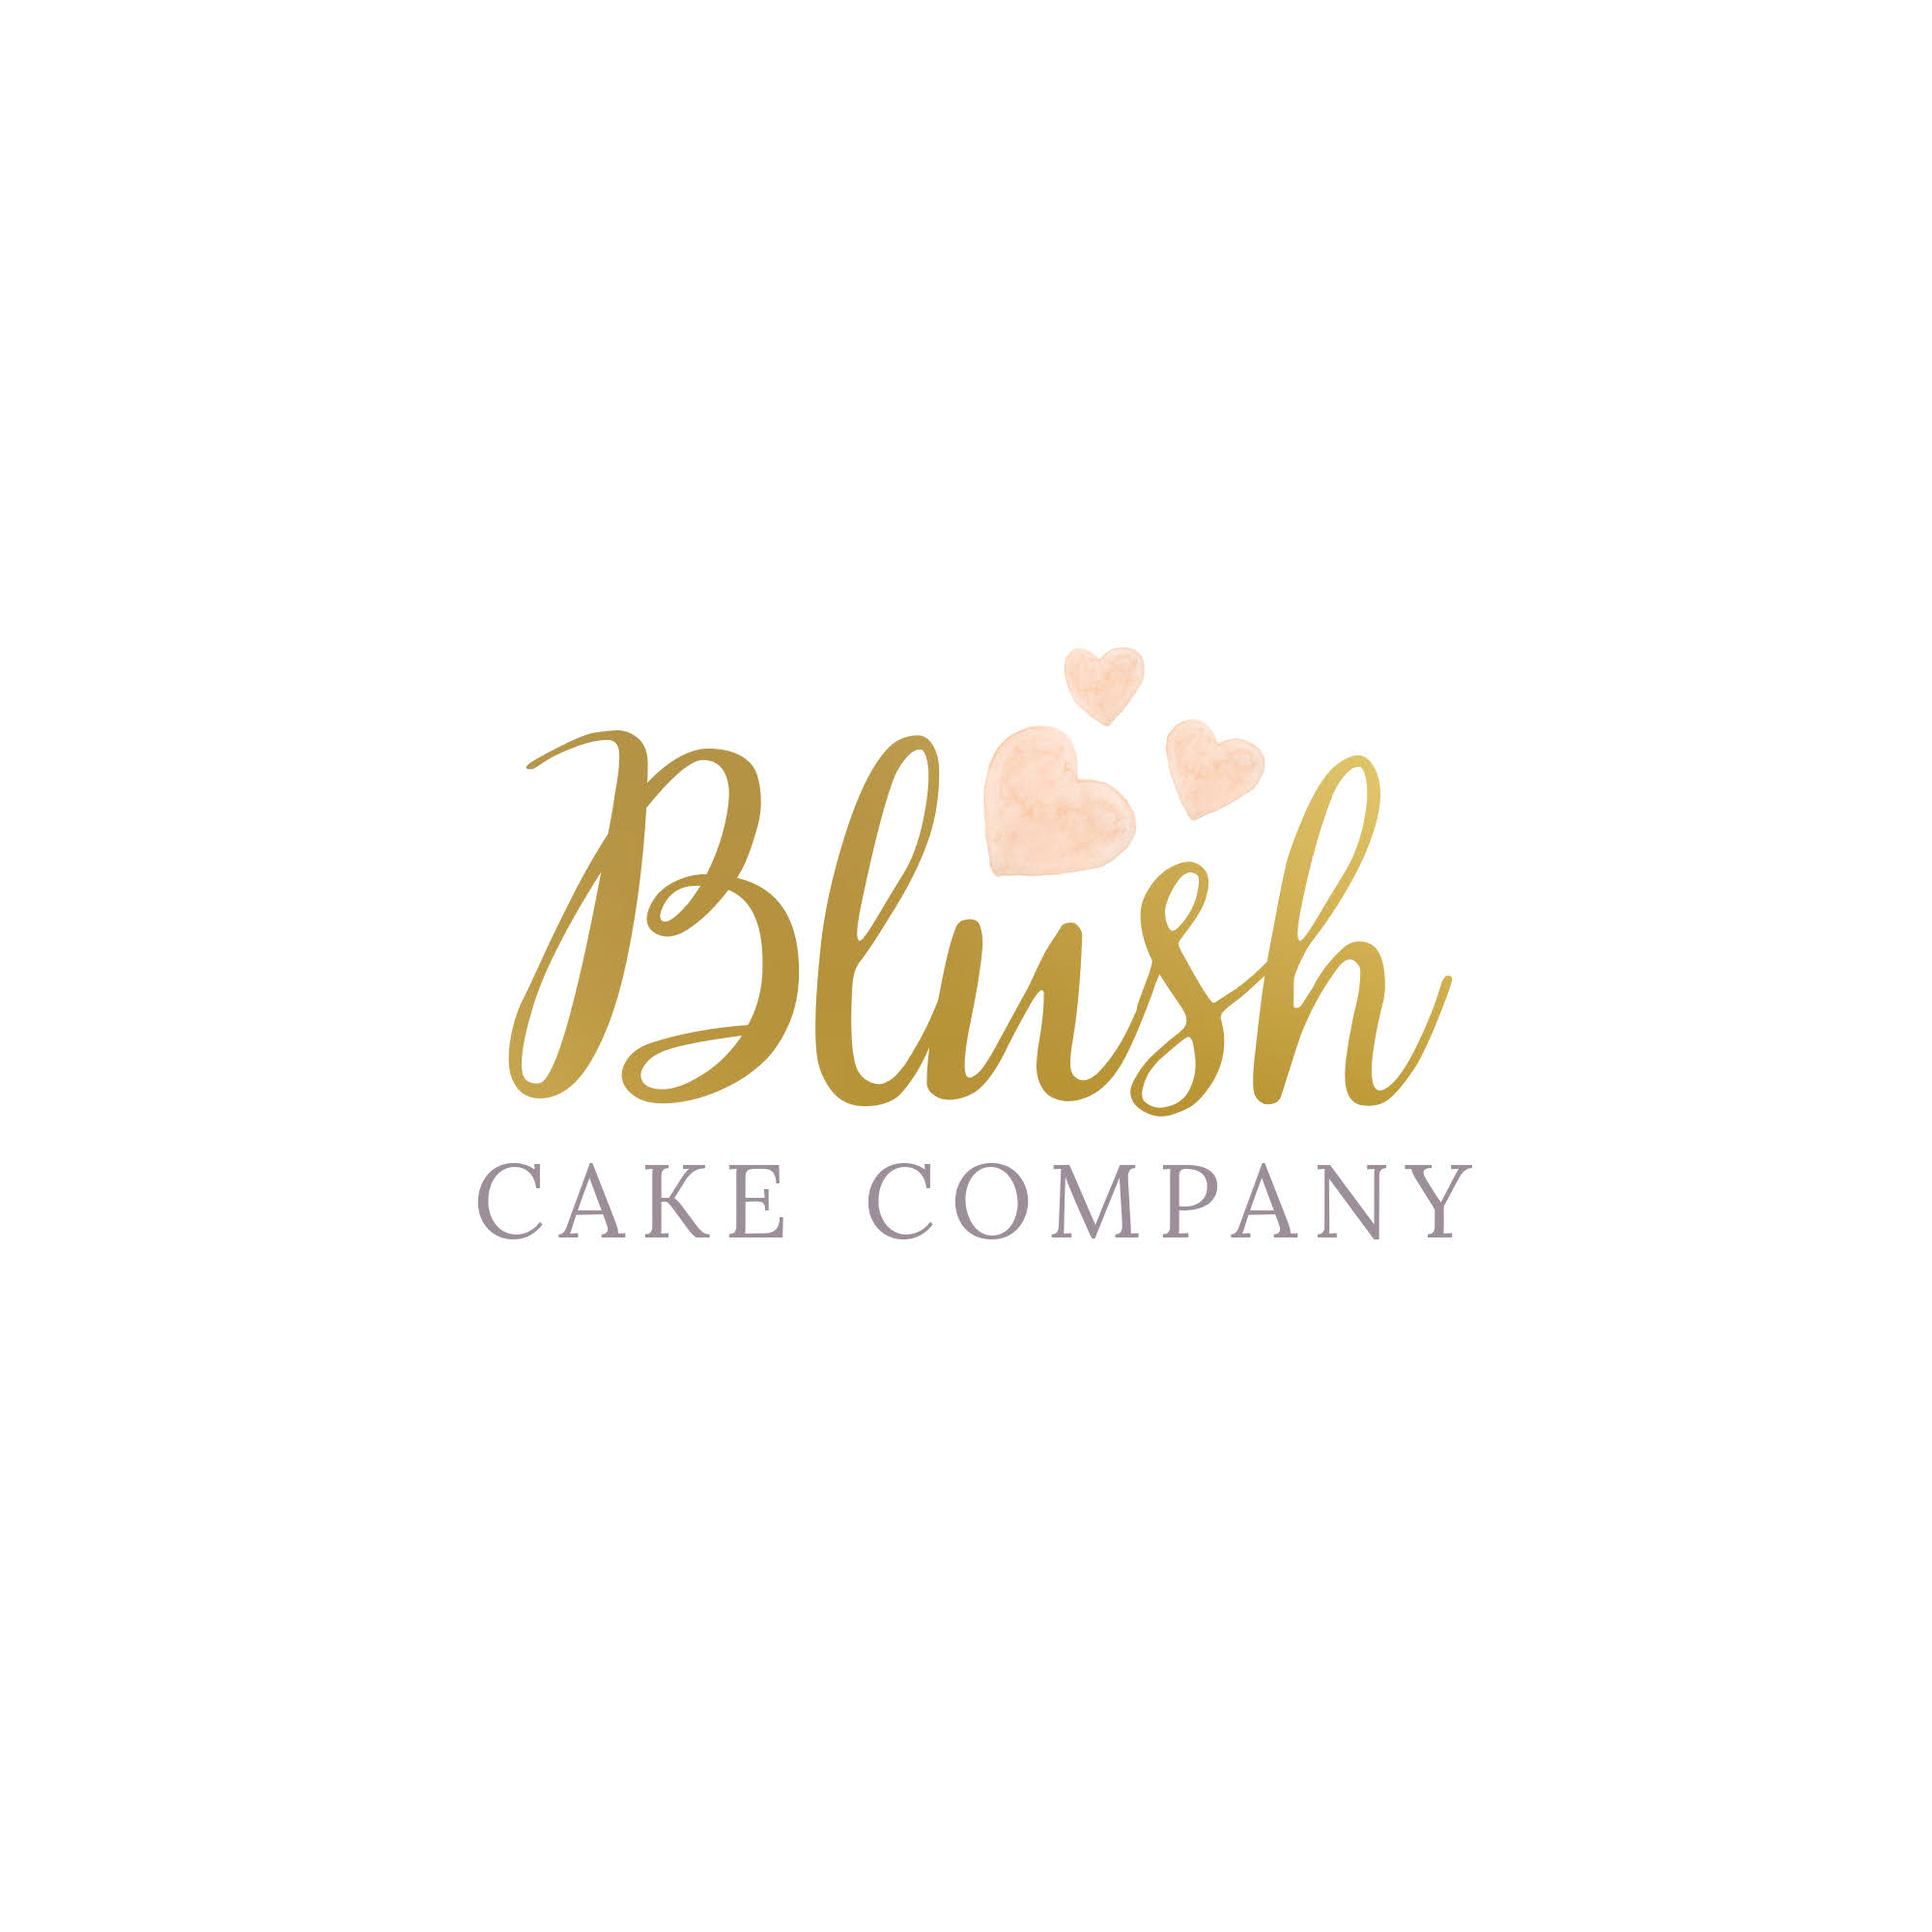 Blush Cake Company - Sarah is an exceptional baker and cake designer. Based just outside York, she crafts cakes which are worthy of their very own table at your party or wedding. I have worked with Sarah many times over the past few years and can't recommend her talent enough. www.blushcakecompany.co.uk/contact/